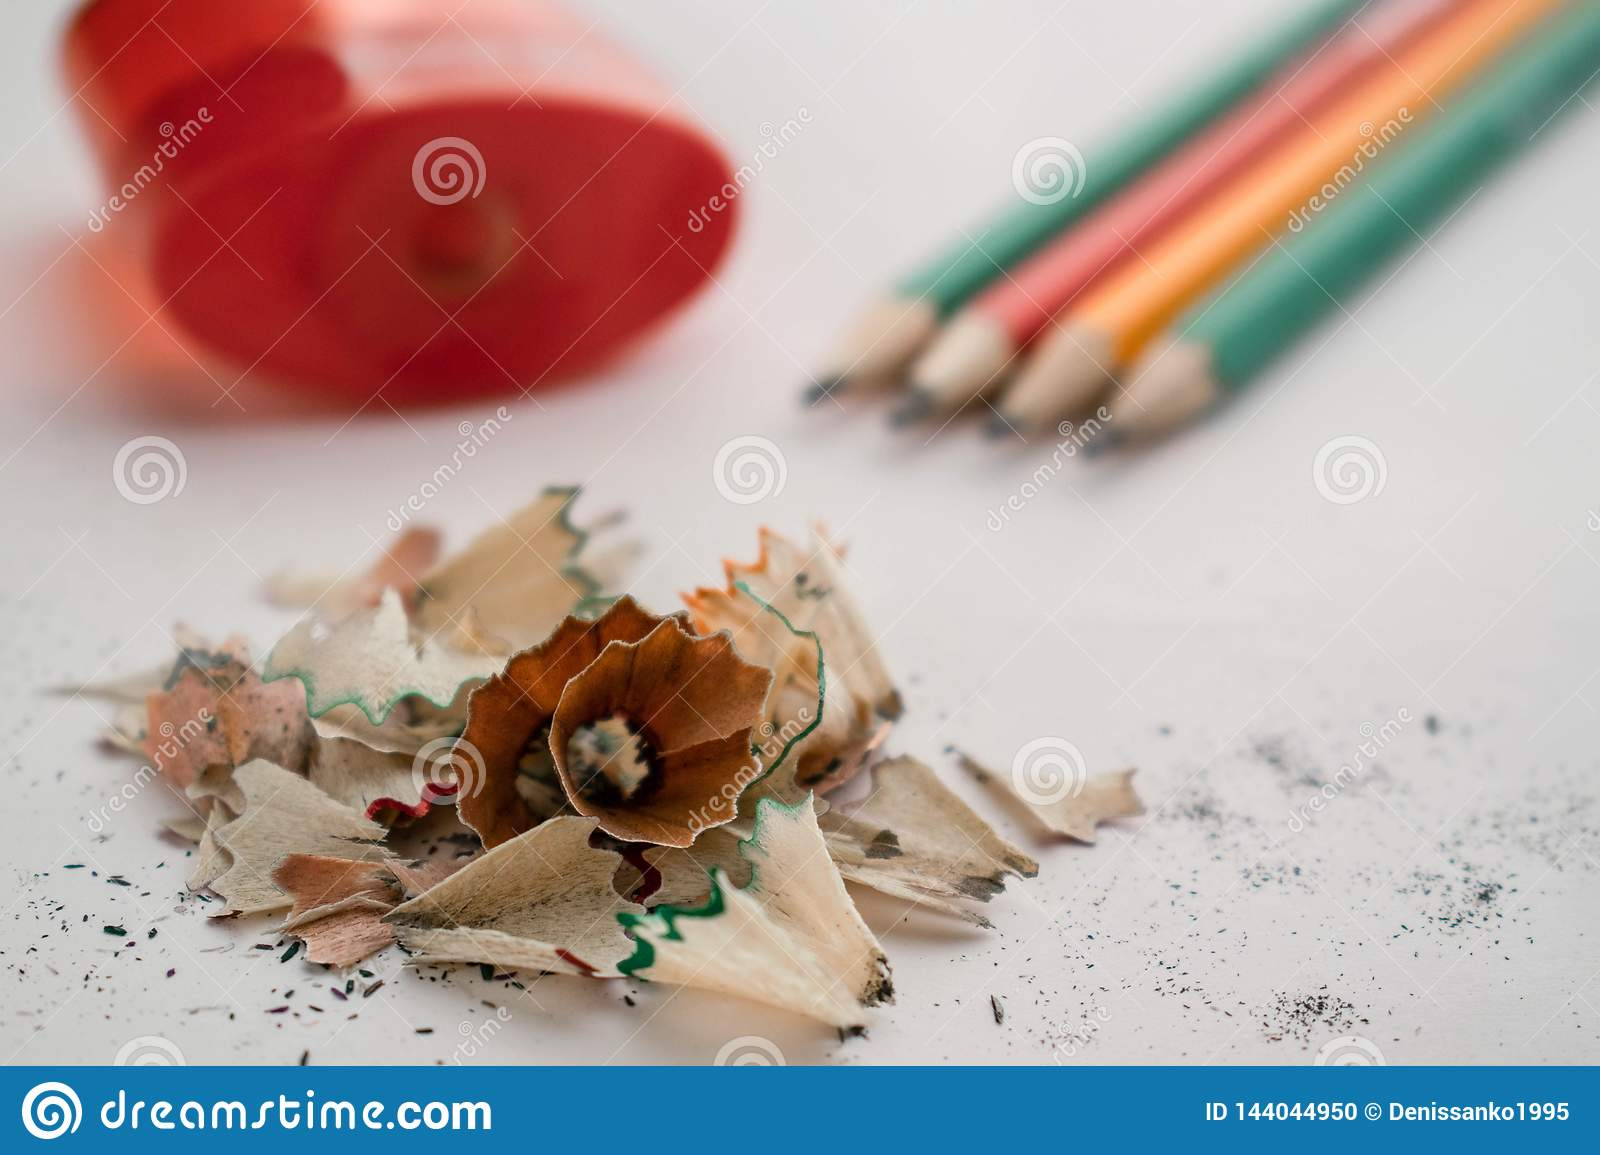 Colour pencils pile of sawdust and red sharpener on a white background